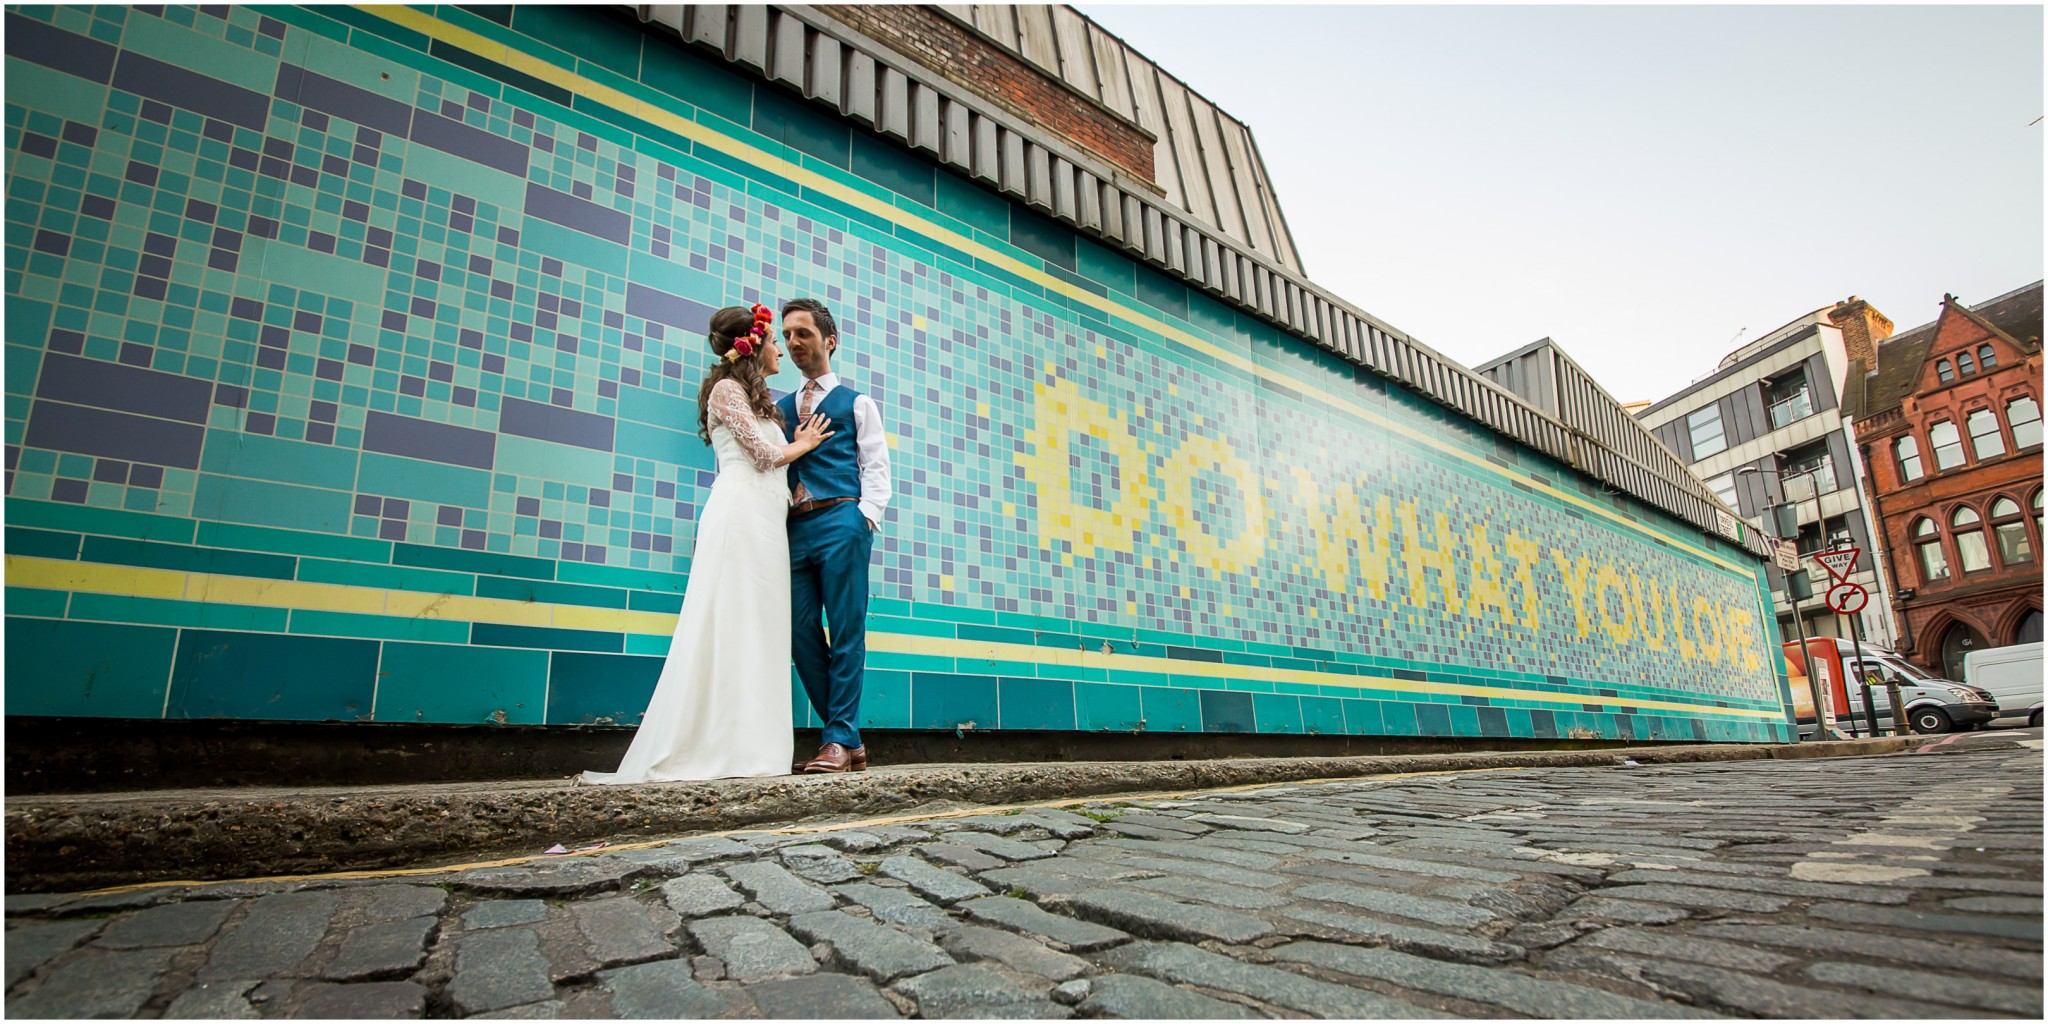 Islington Metal Works Wedding -Do What You Love mural